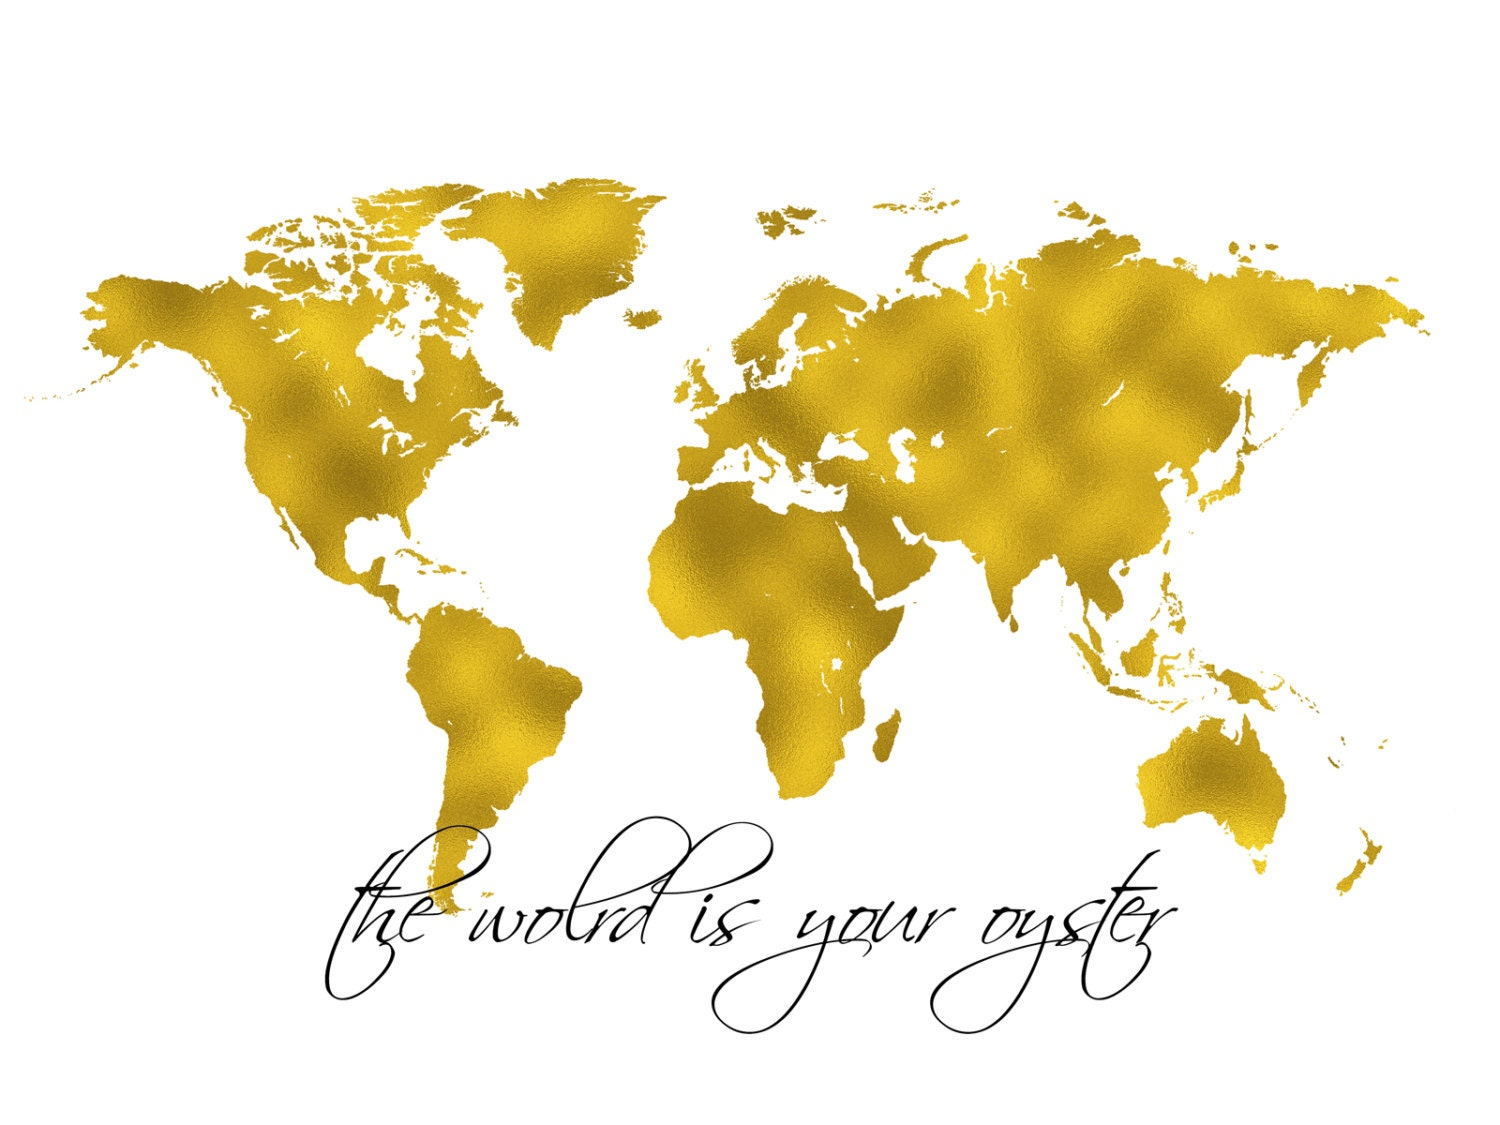 World map gold print gold map printable wall art the world is world map gold print gold map printable wall art the world is your gumiabroncs Image collections